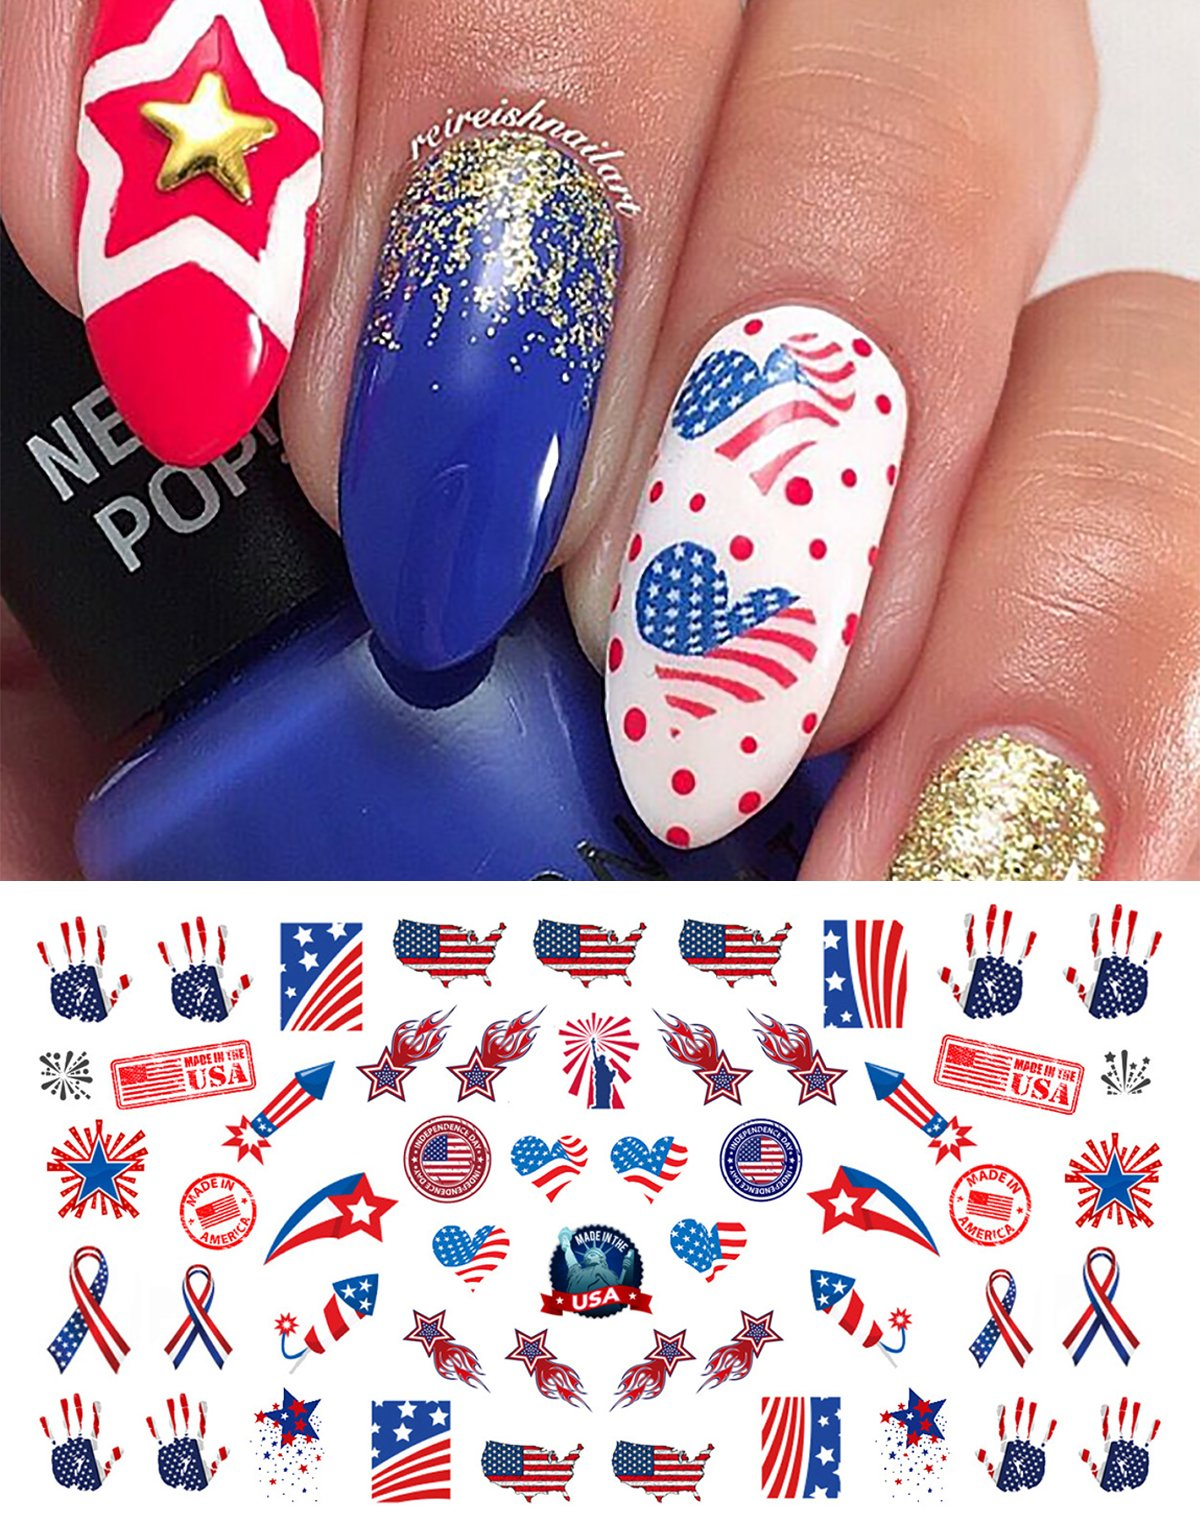 Amazon.com: 4th of July Water Slide Nail Art Decals - Salon Quality ...